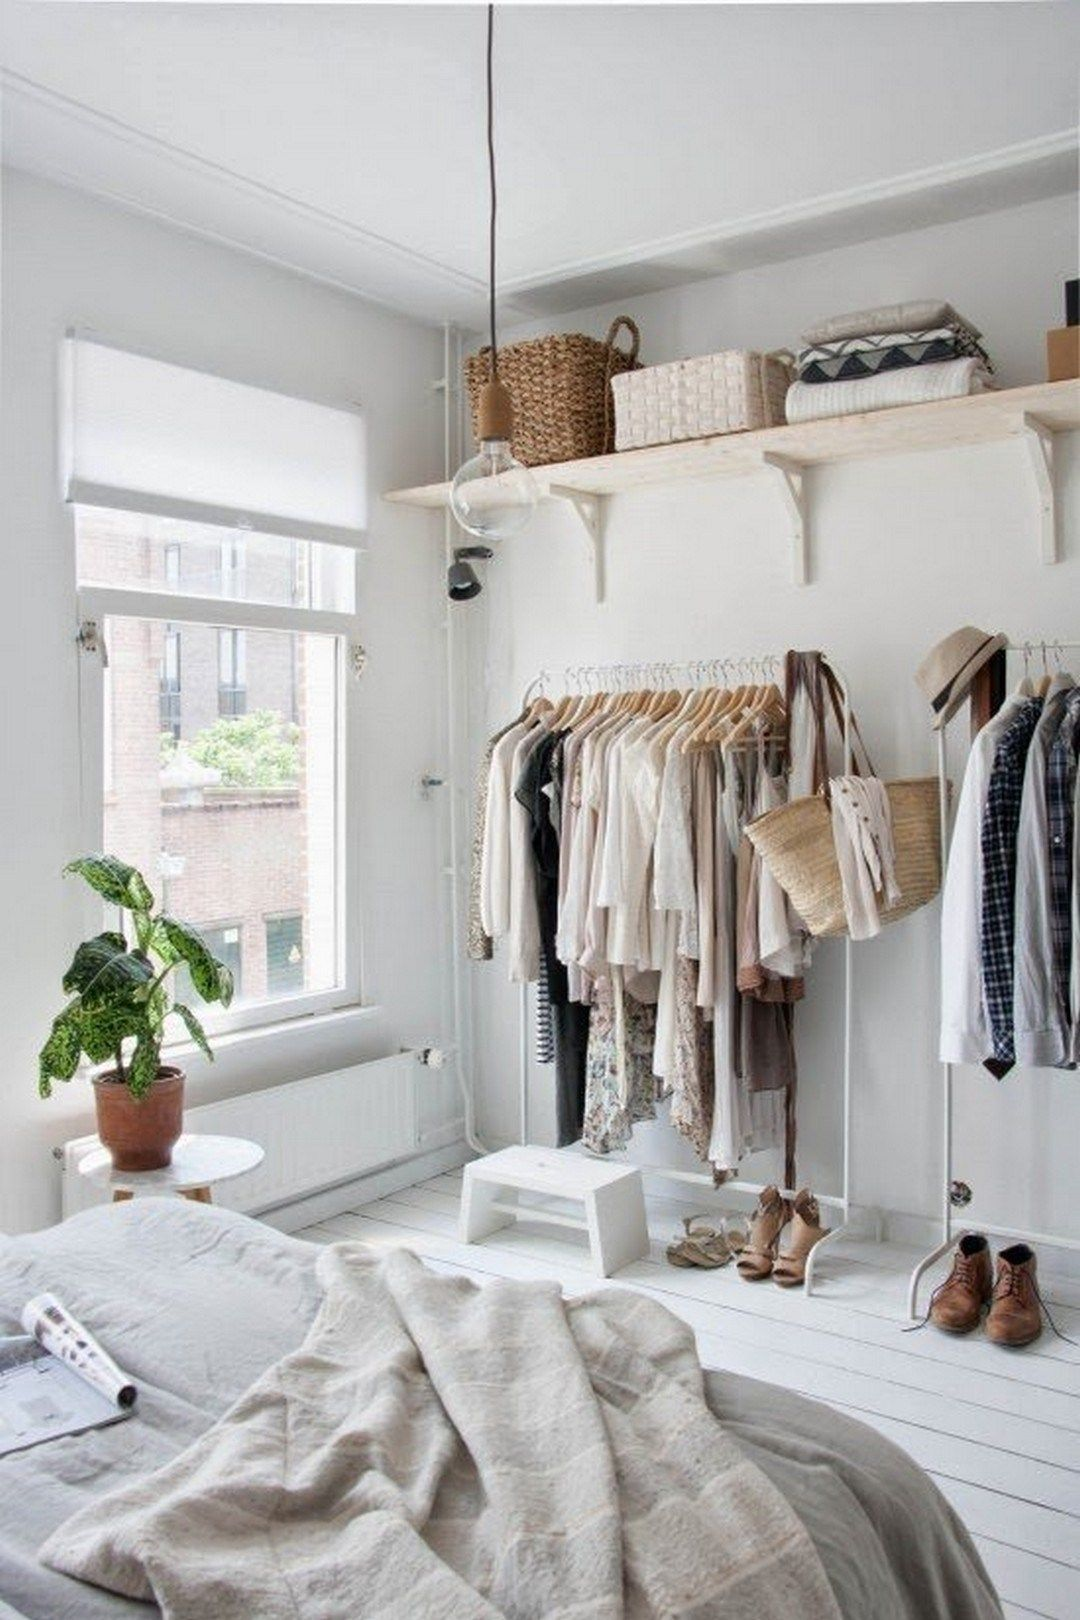 99 Genius Apartement Storage Ideas For Small Spaces (38) | New House ...